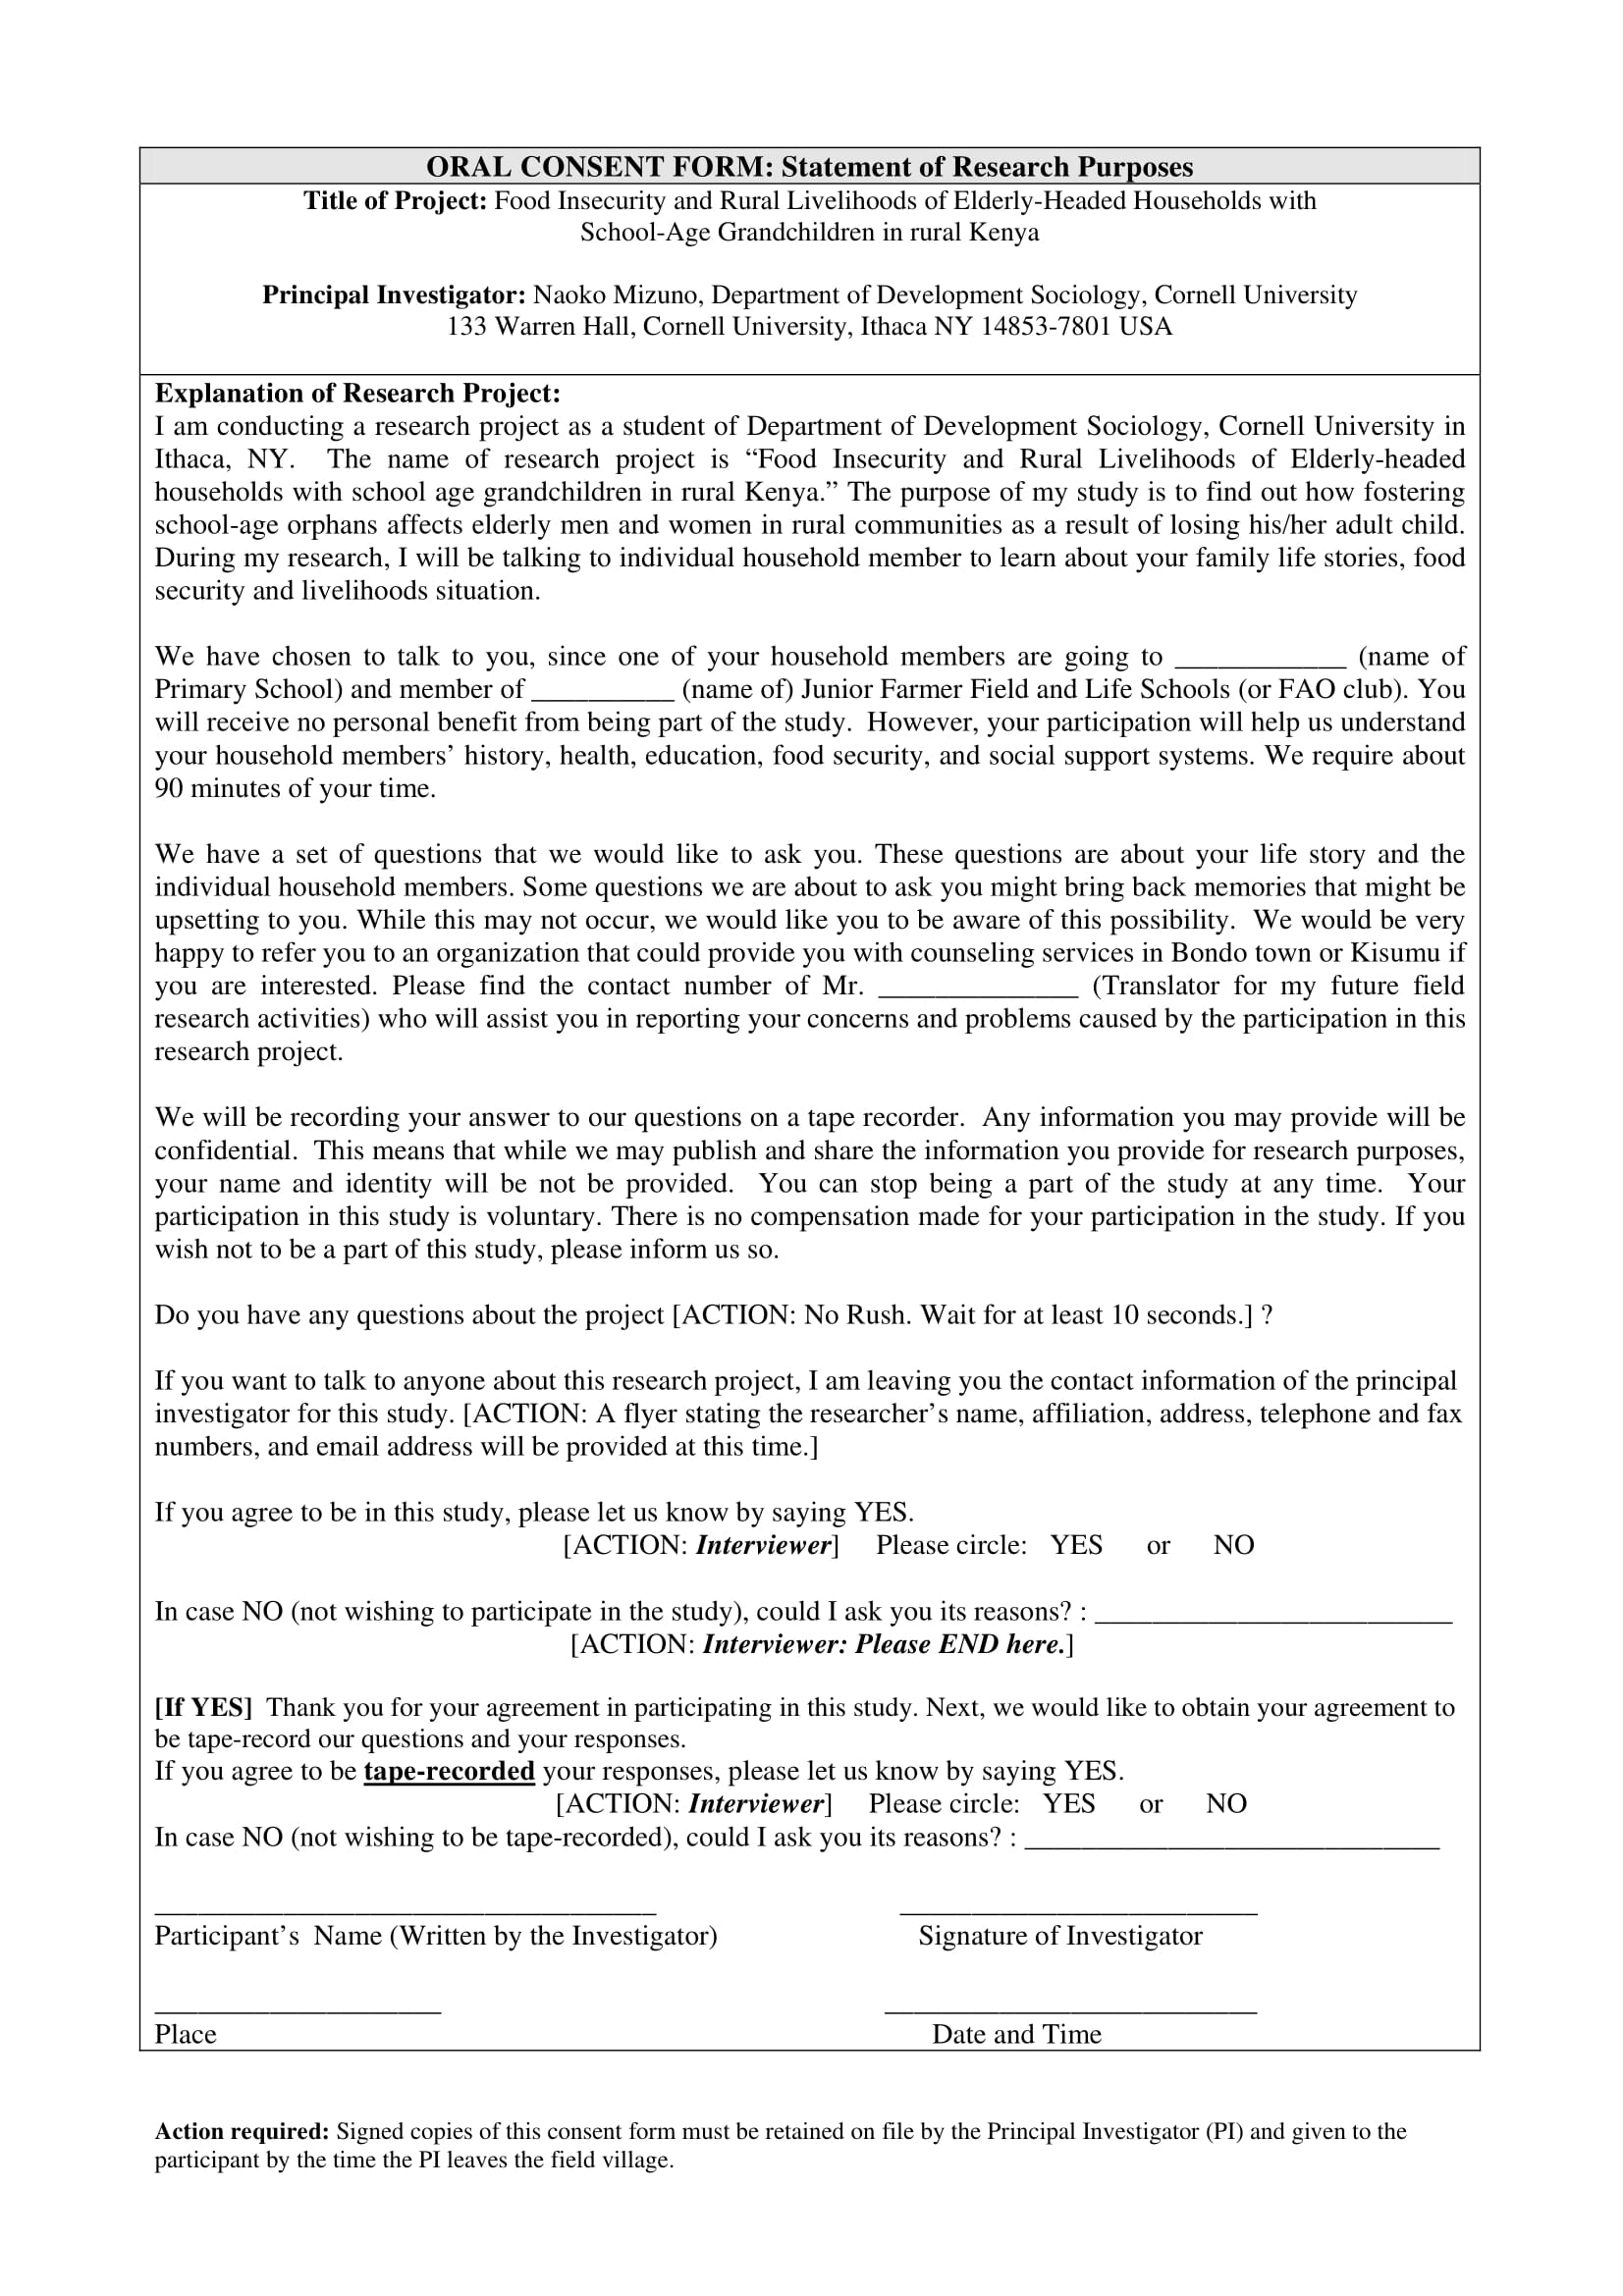 oral consent form sample 1